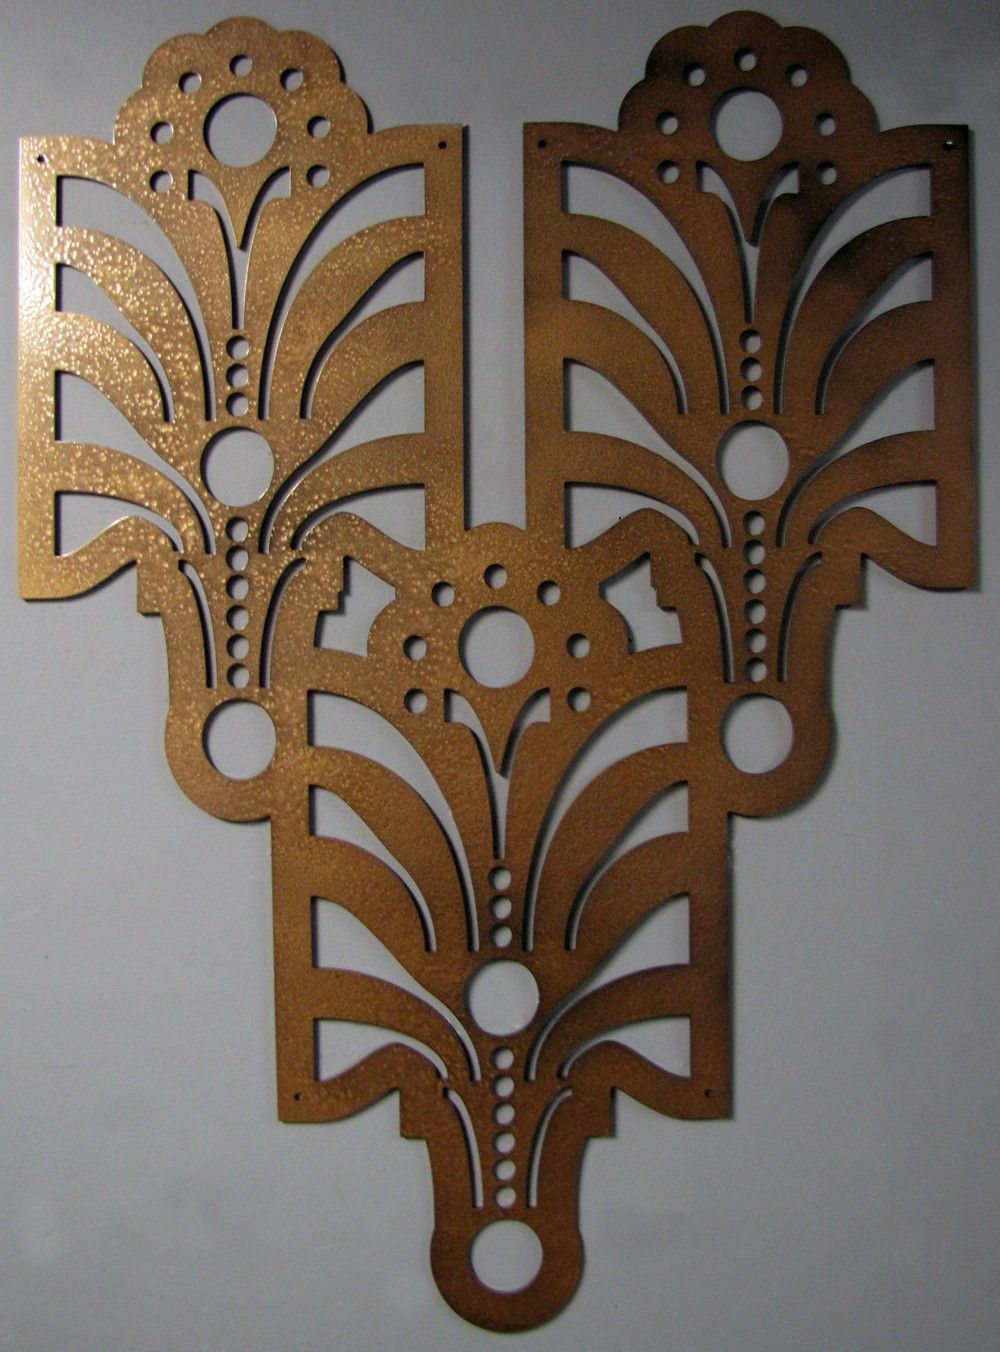 Exceptionnel Art Deco Arts And Craft Decorative Wall Art In Tiger Eye 23 X 33 CLEARANCE.